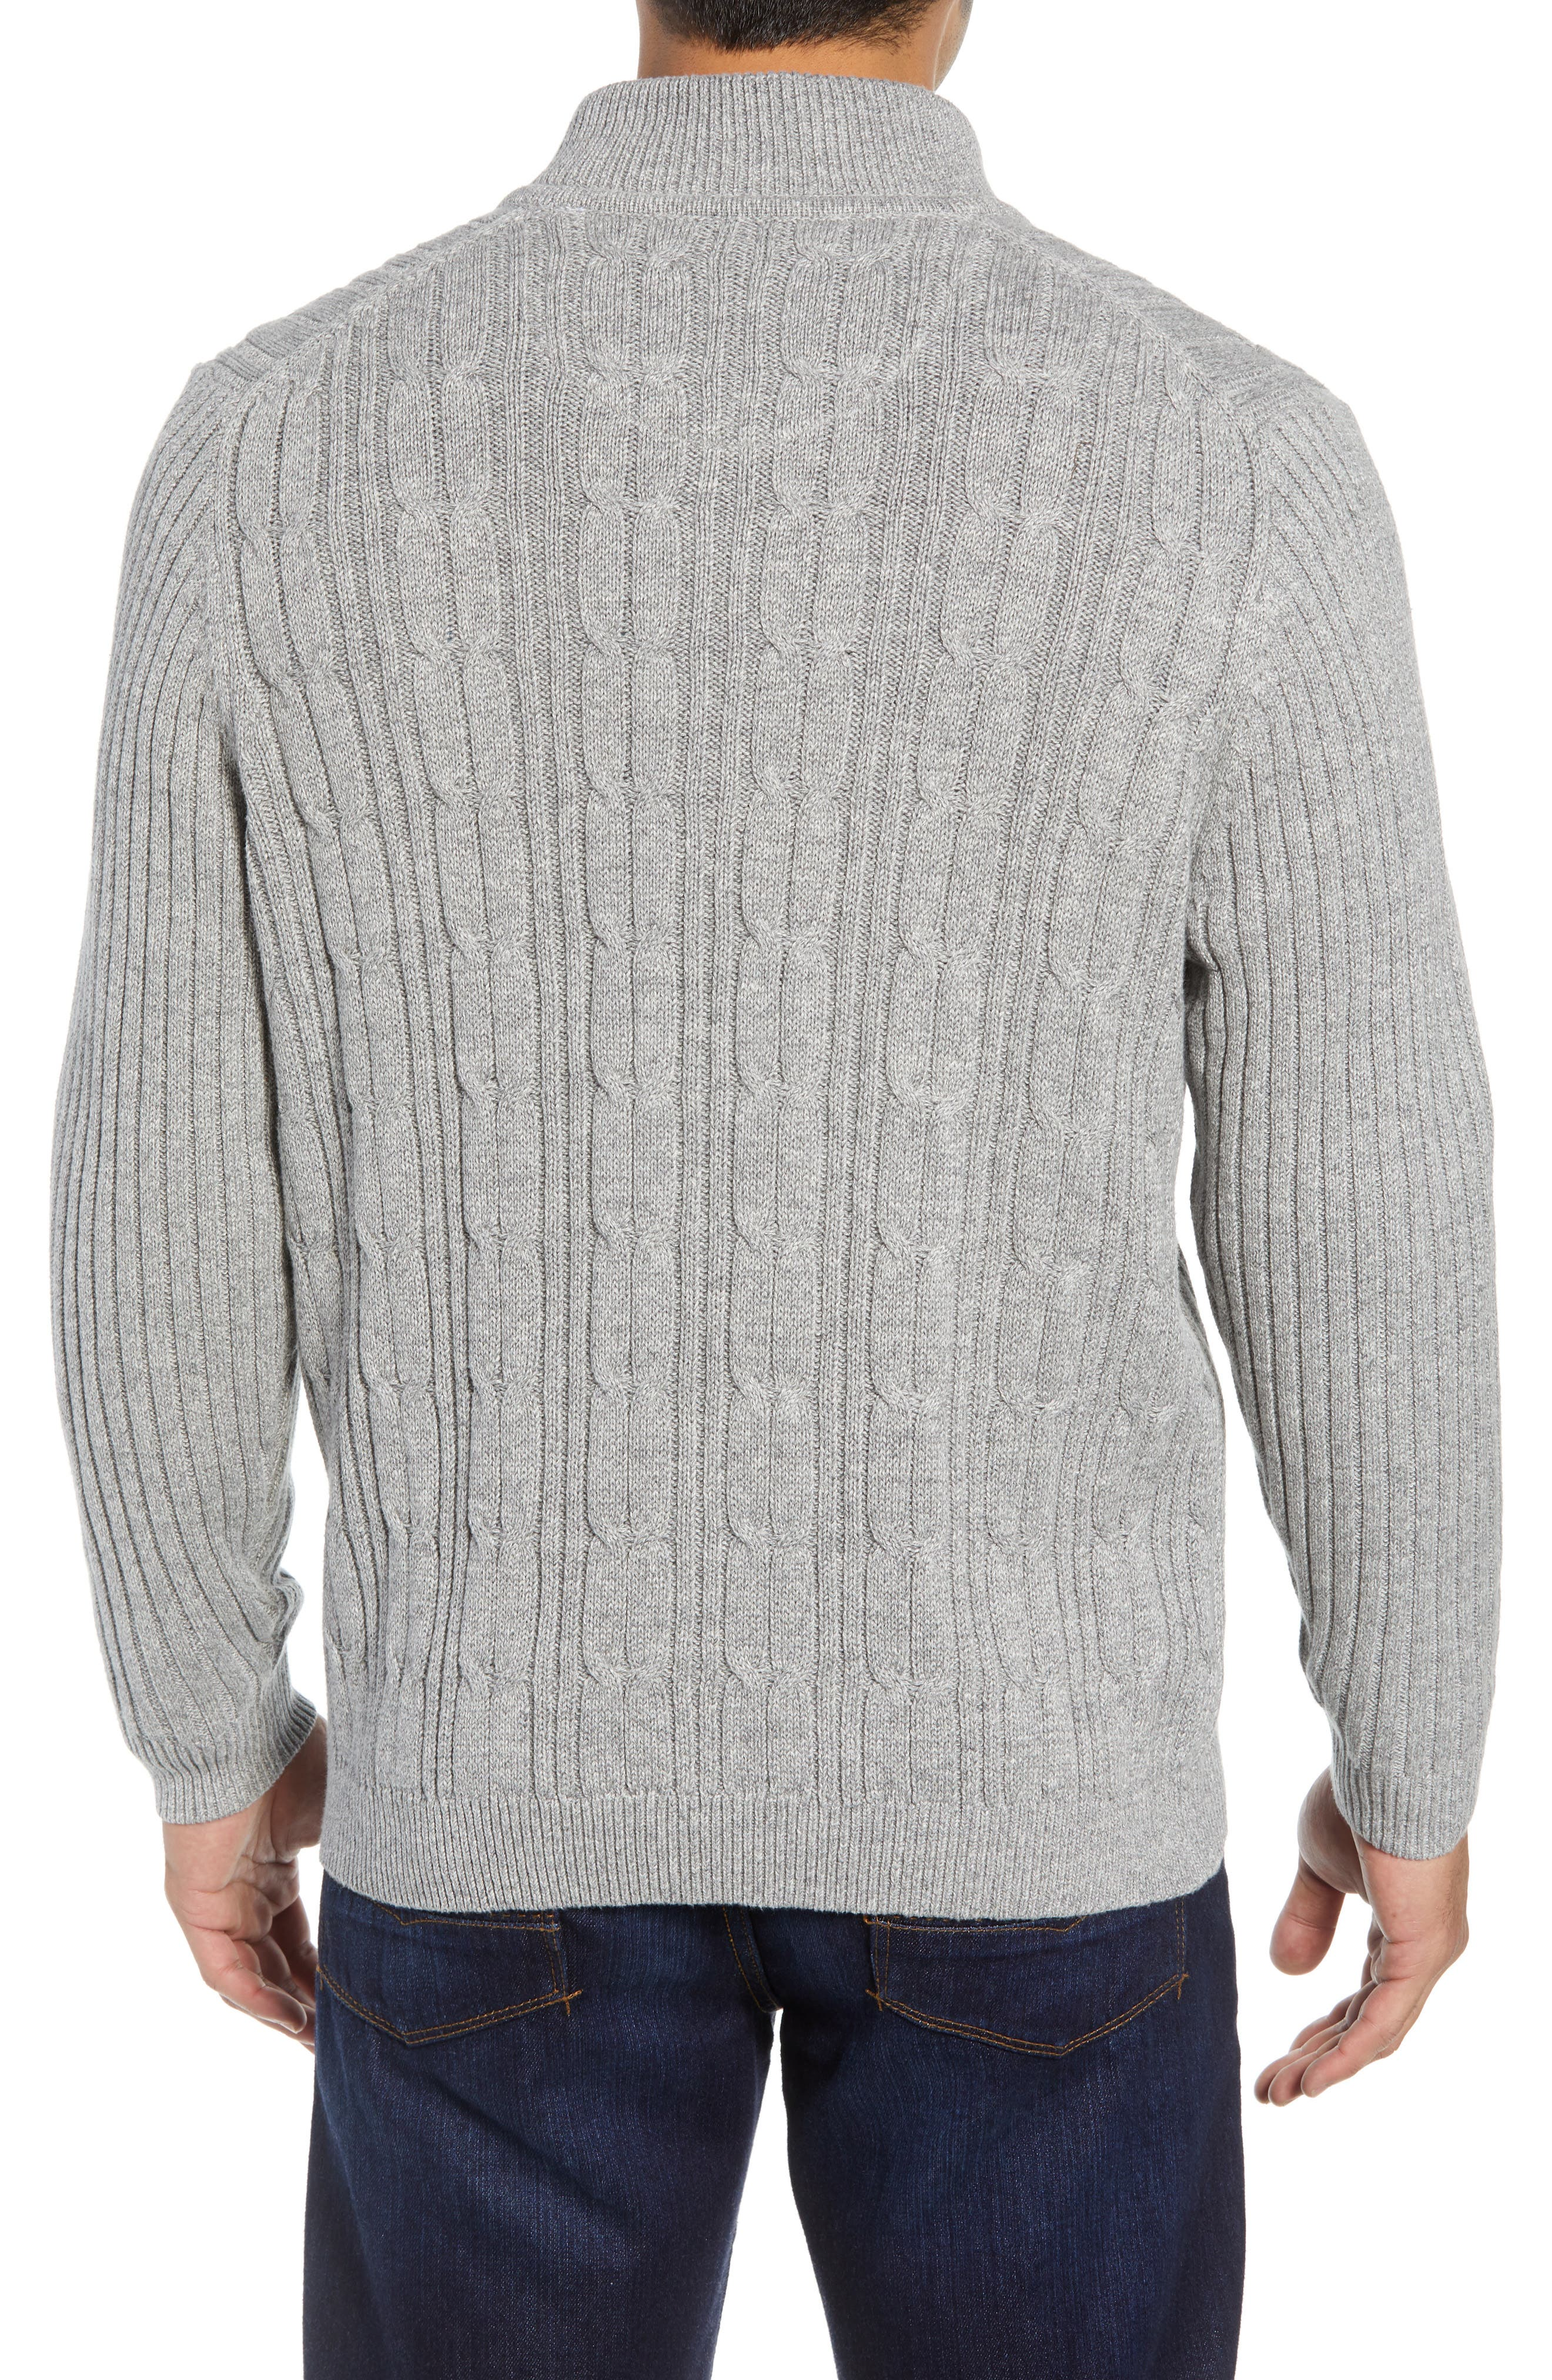 Tenorio Cable Knit Zip Sweater,                             Alternate thumbnail 2, color,                             LIGHT STORM